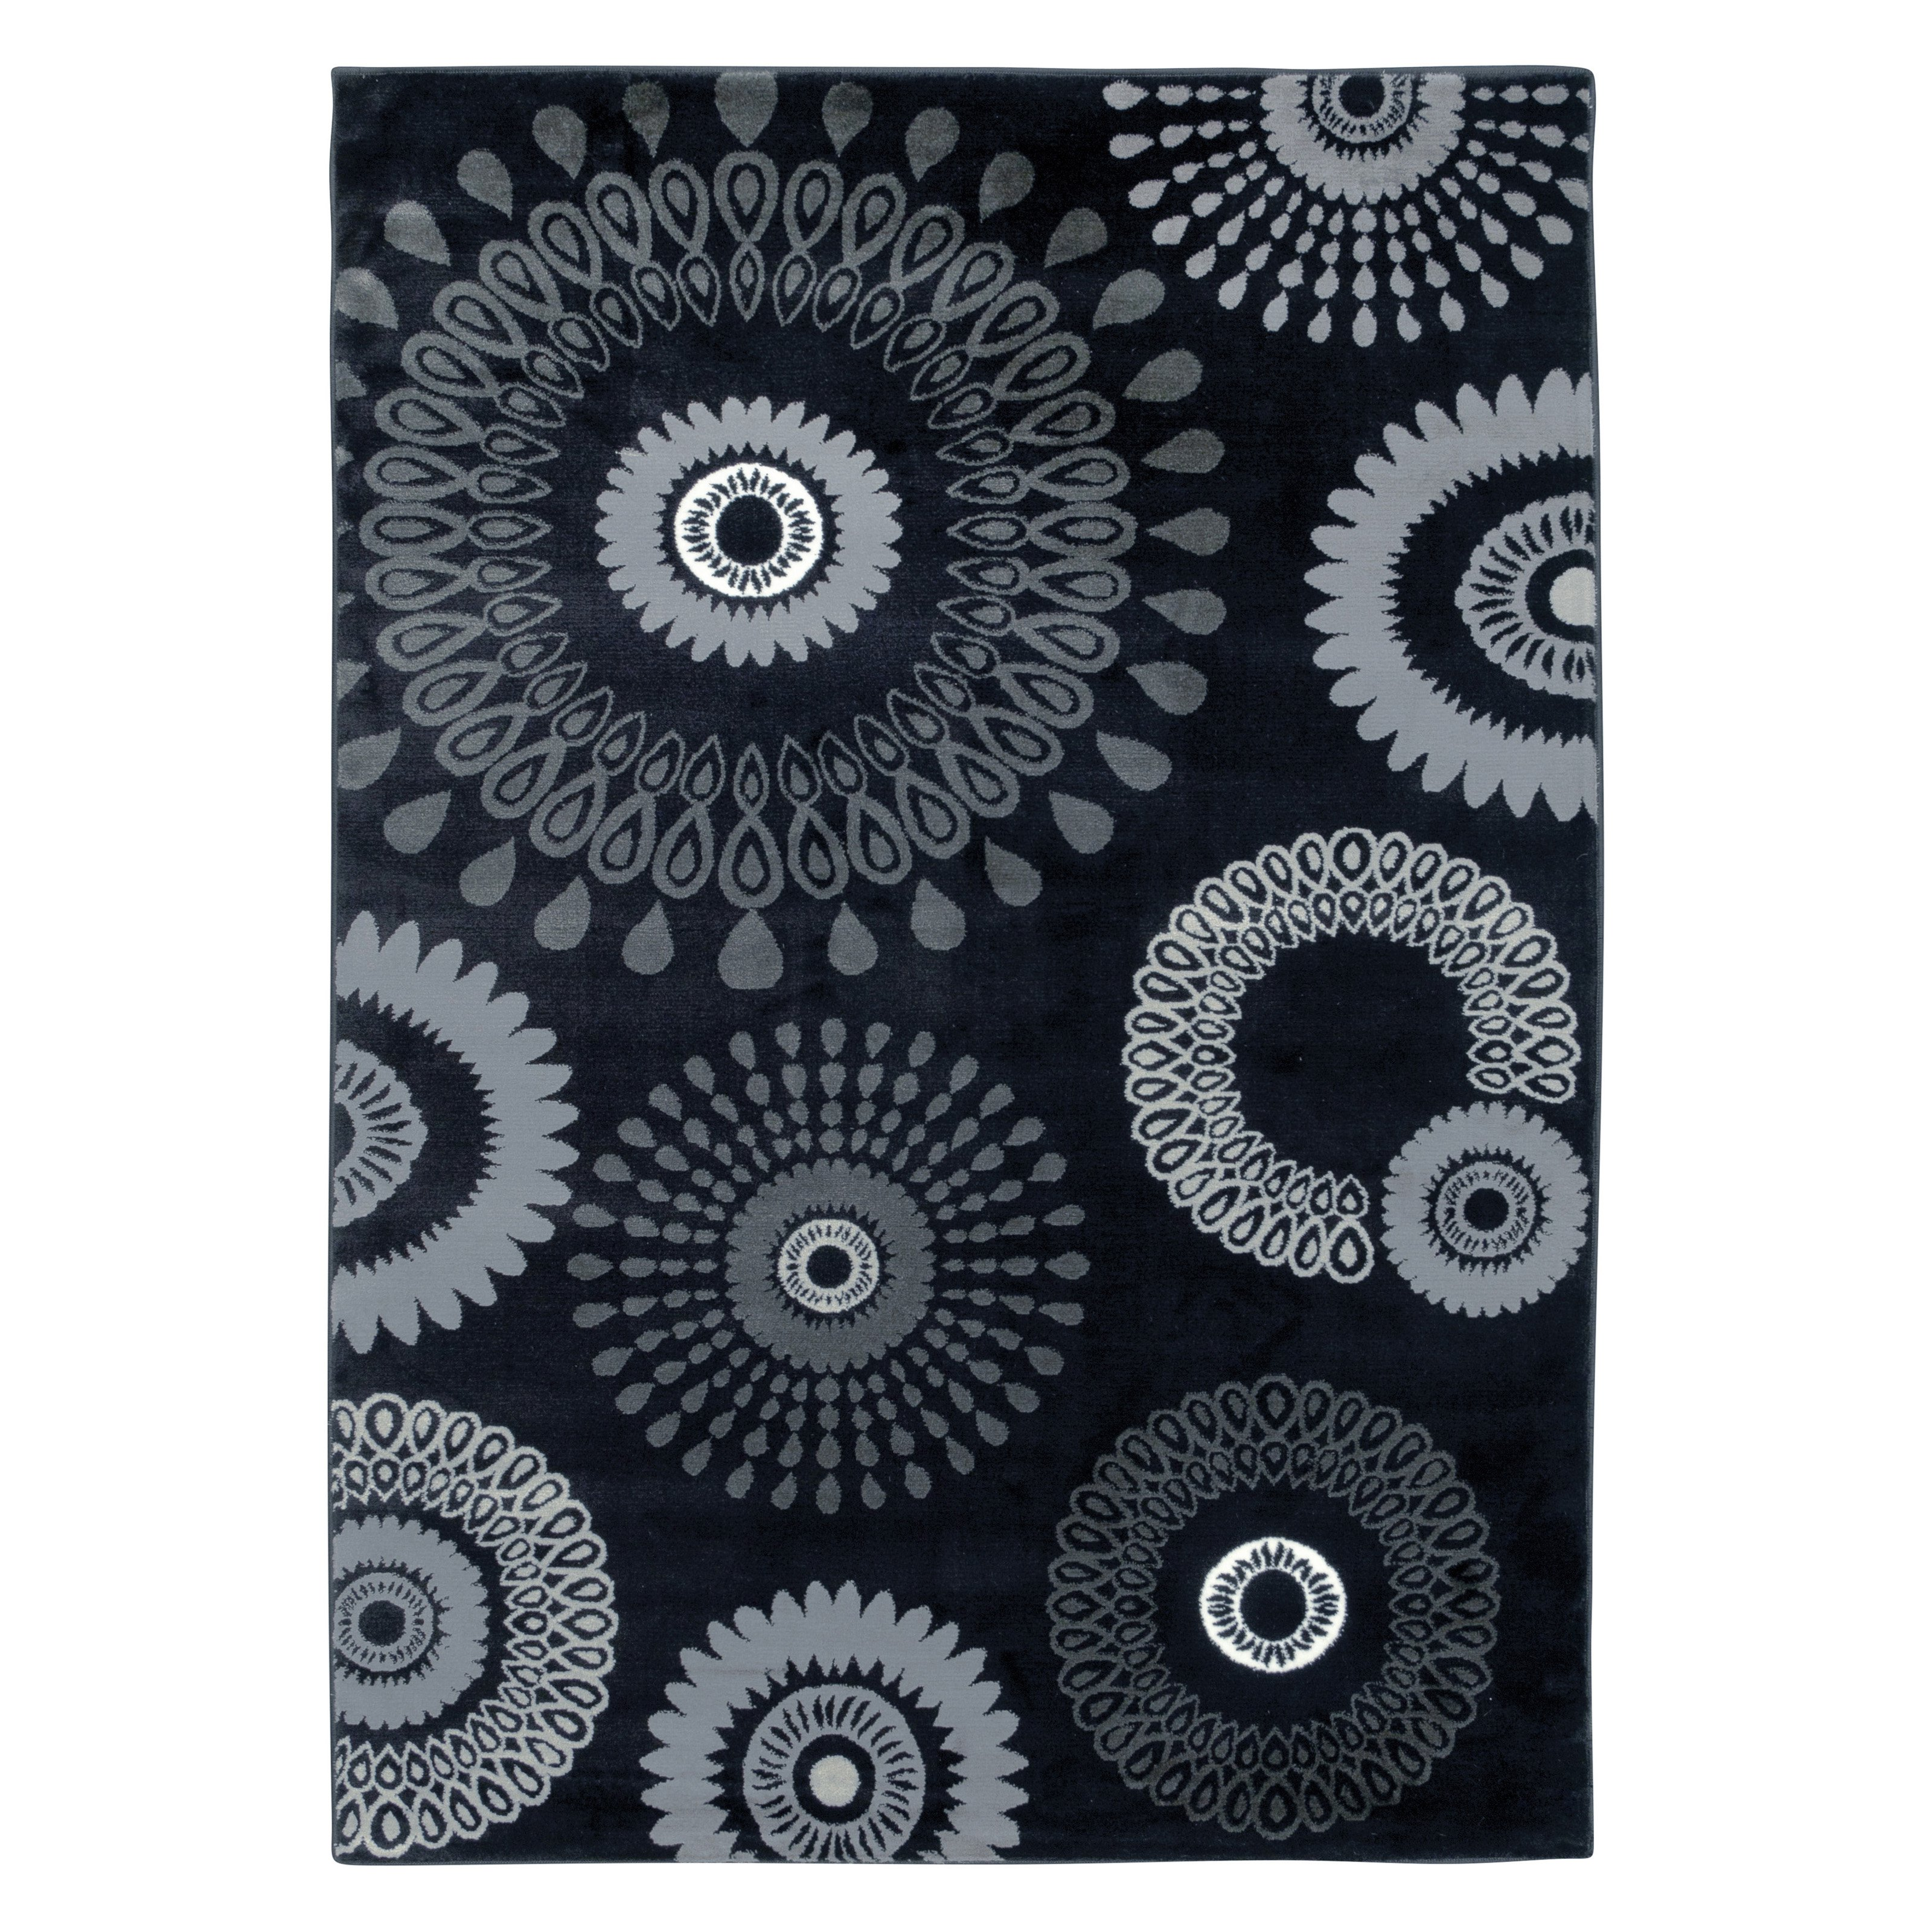 Contemporary Plush Indoor Runner Rug in Charcoal (2 ft. 9 in. L x 1 ft. 9 in. W)